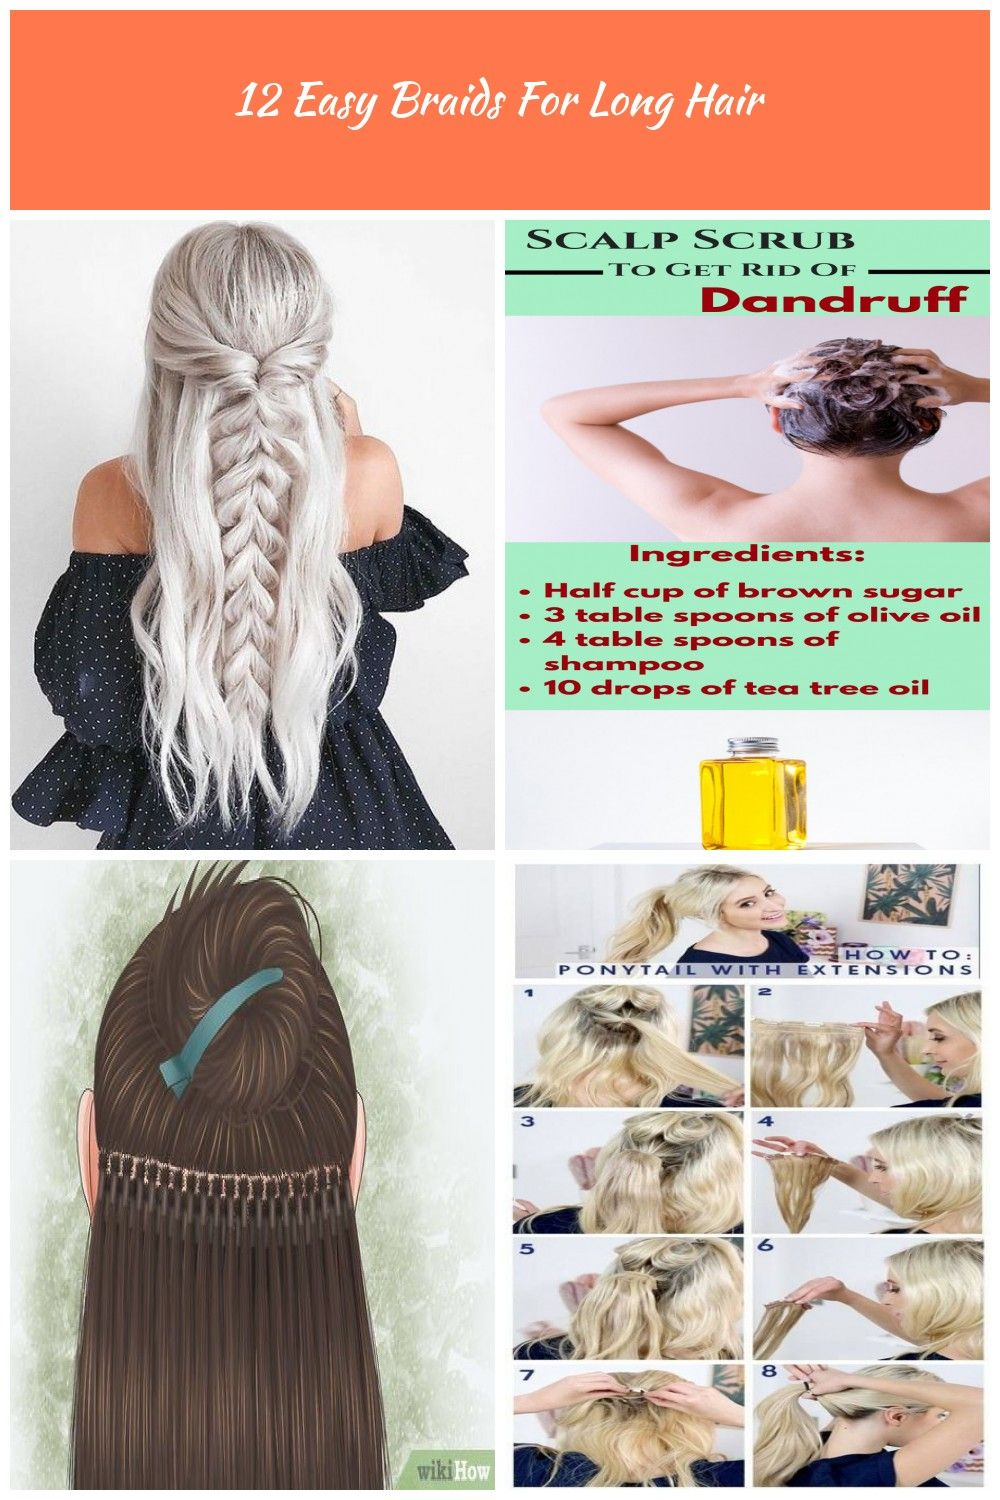 How To Get Rid Of Dandruff With Hair Extensions